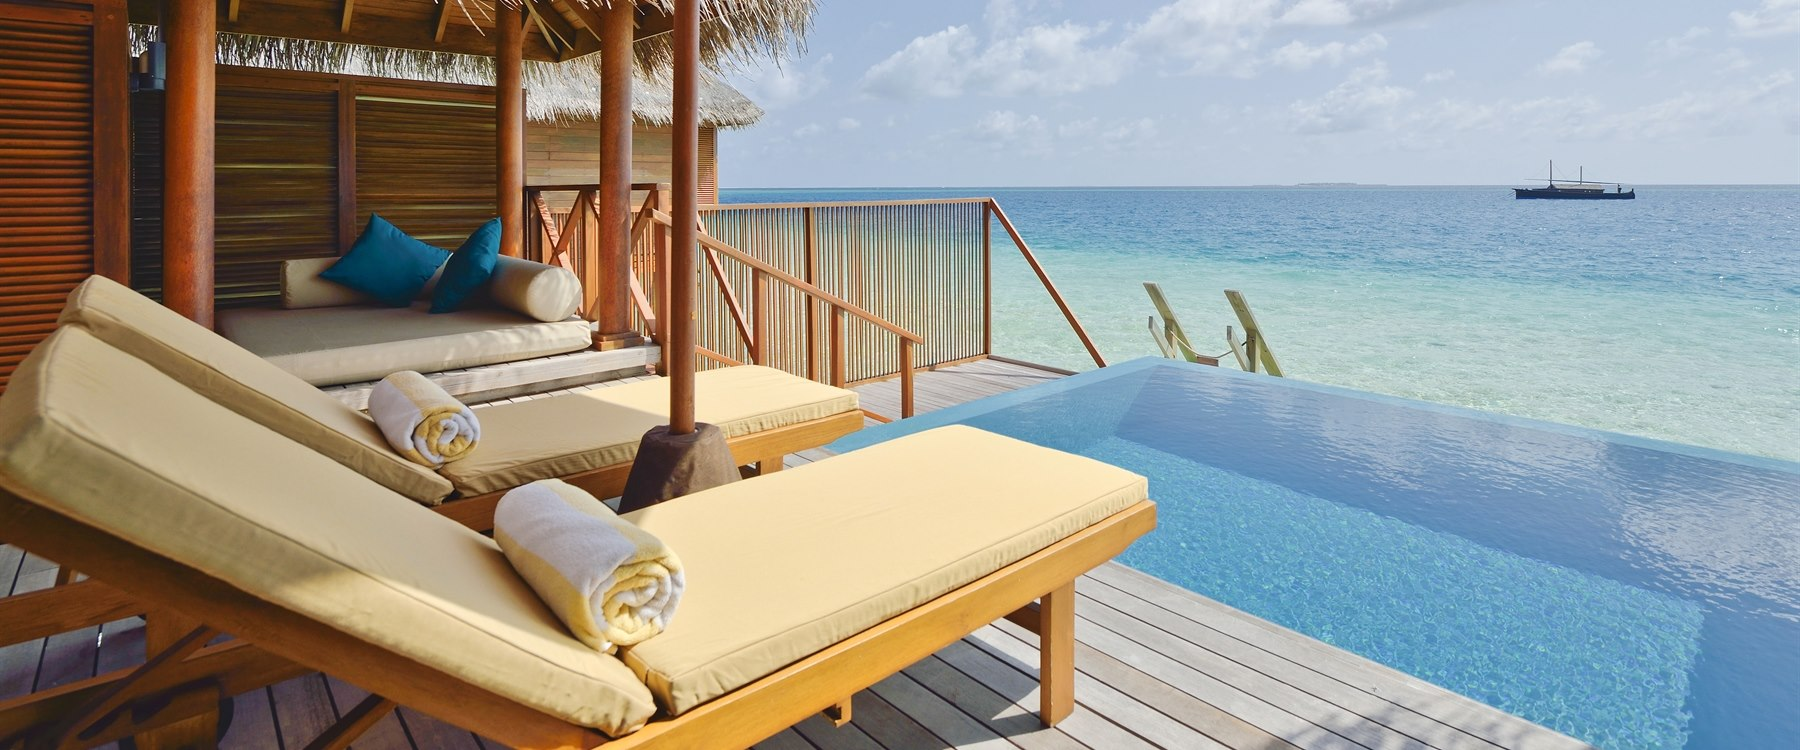 Lagoon Bungalow with Pool at Huvafen Fushi, Maldives